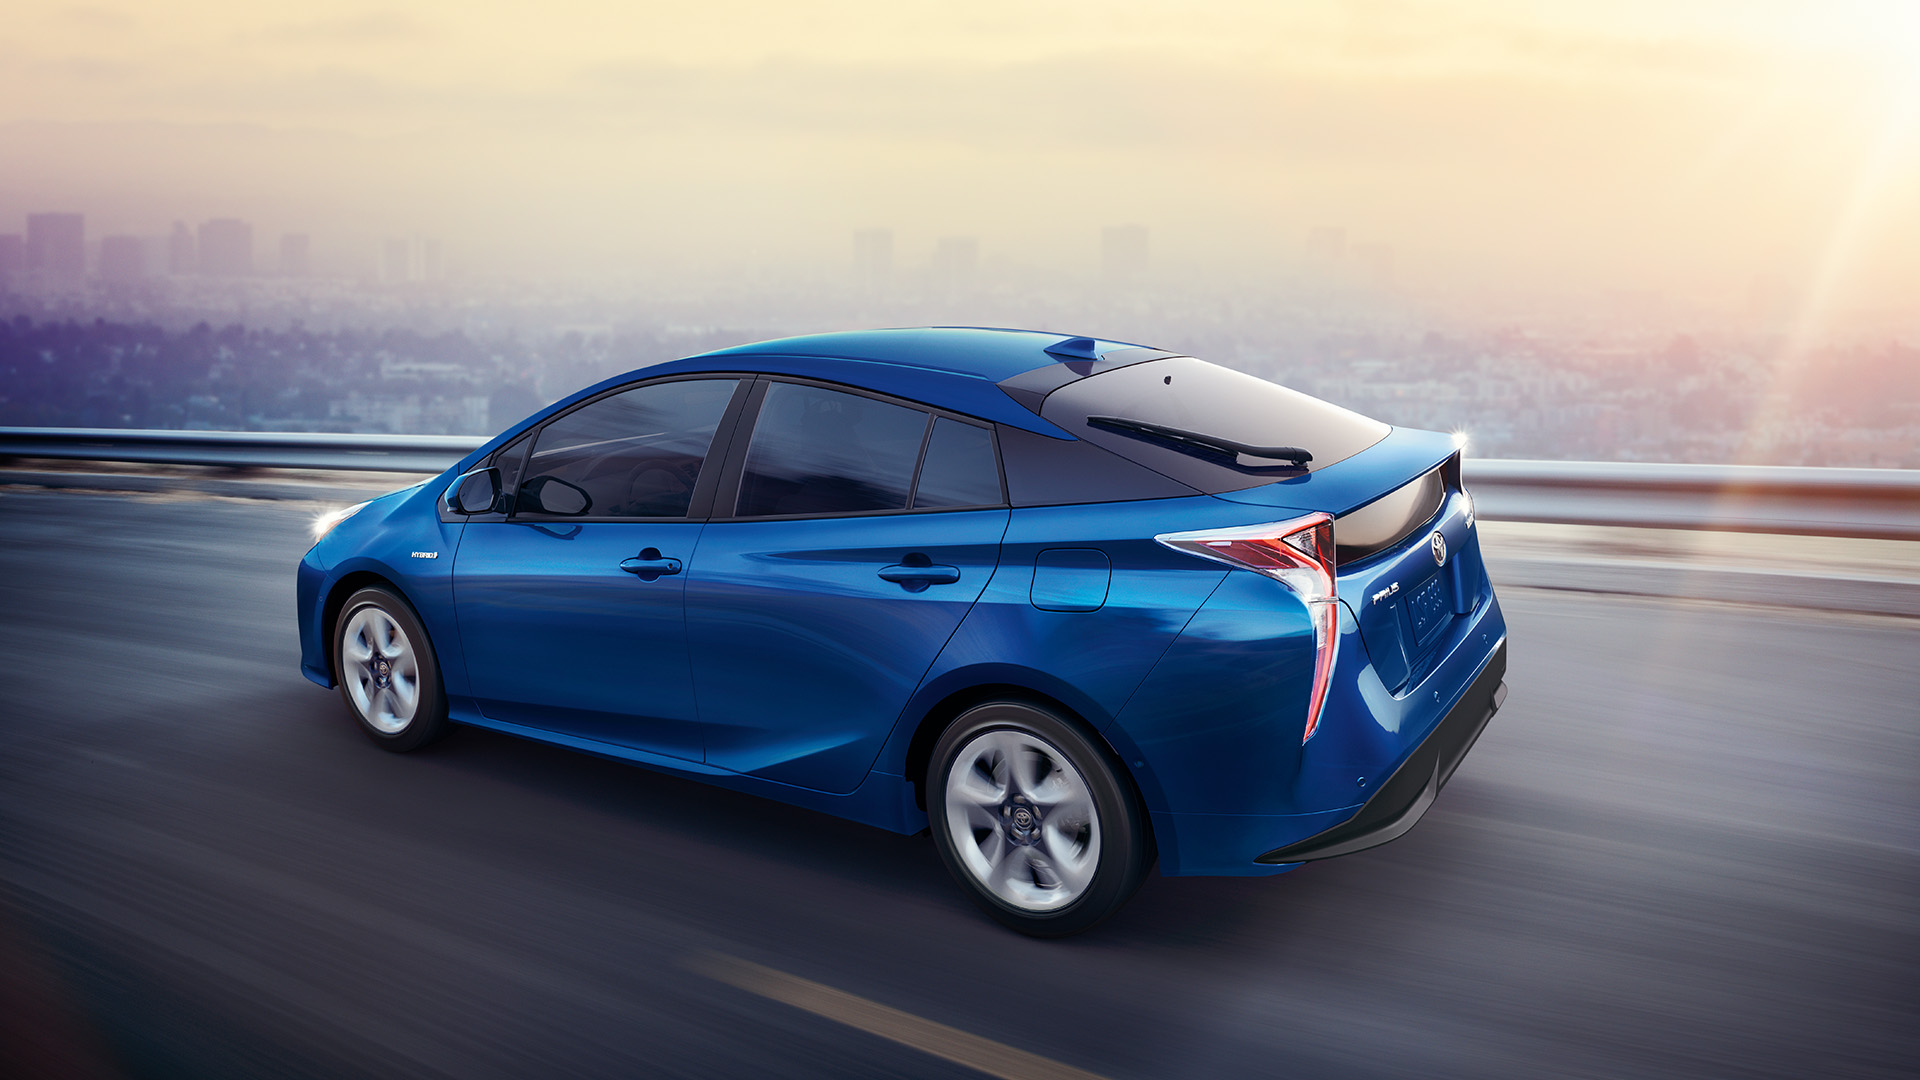 Toyota New Car 2017 >> 2017 Toyota Prius Overview | The News Wheel